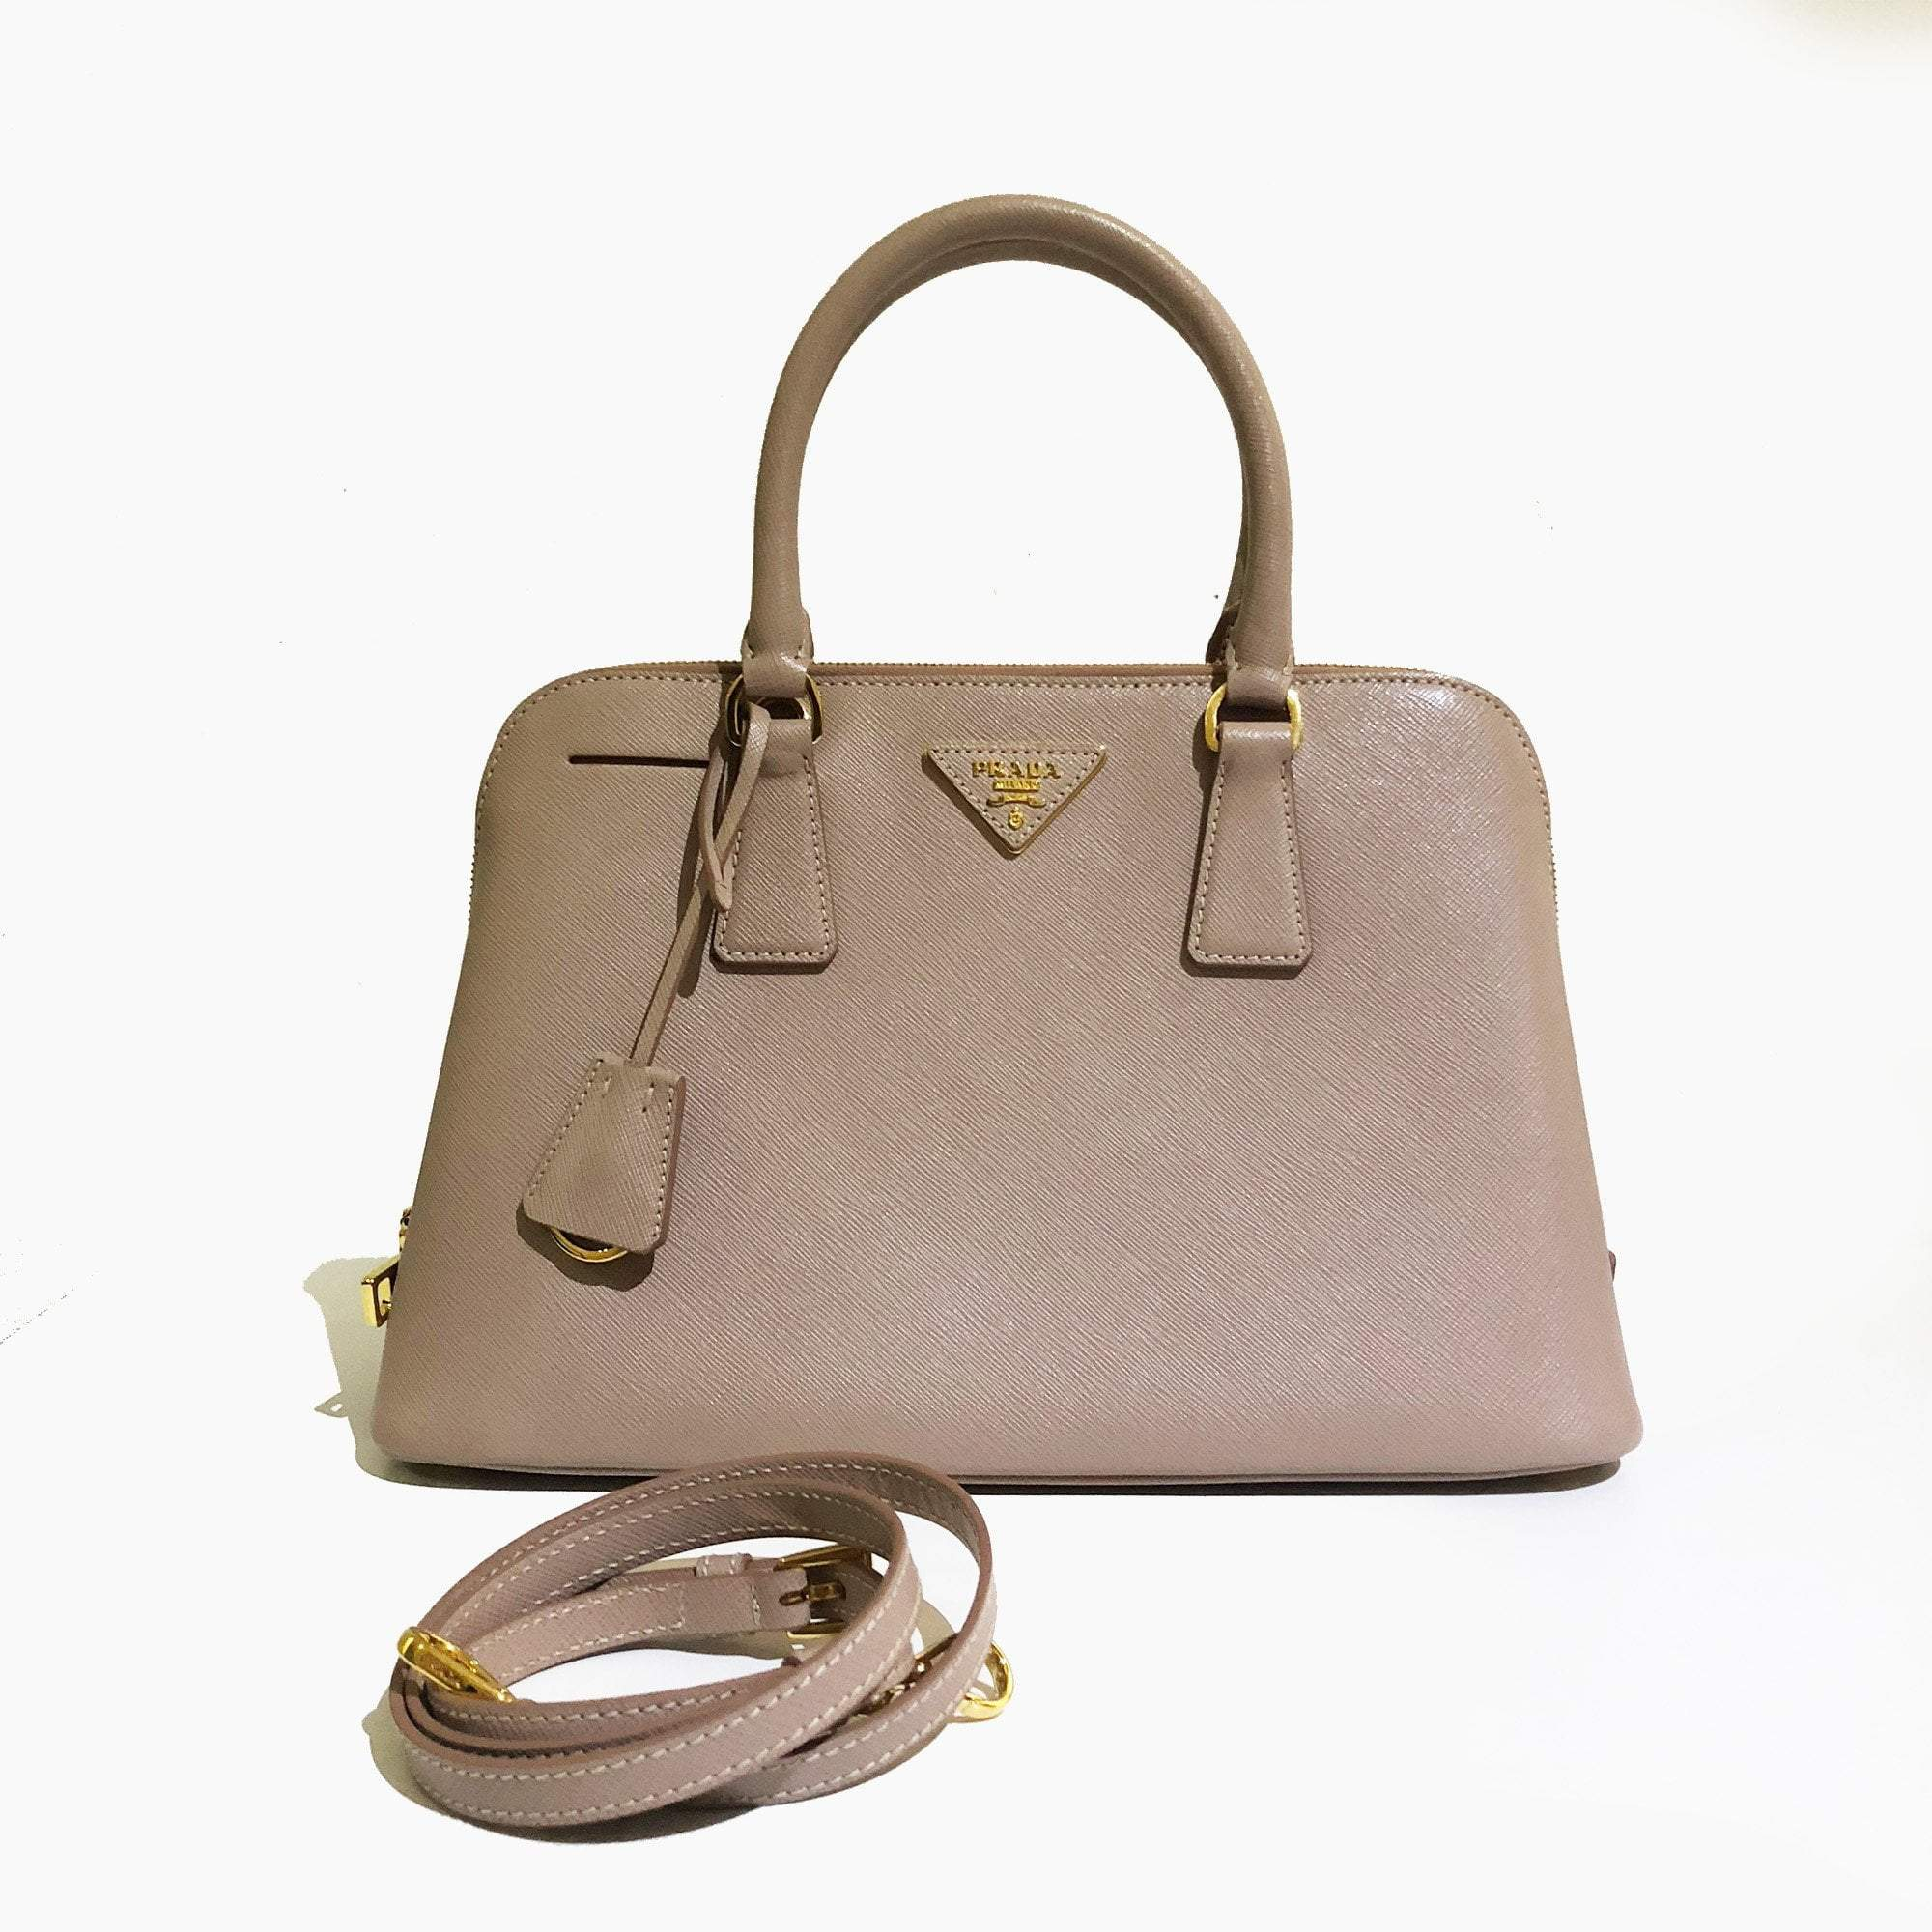 Prada Saffiano Medium Promenade Dusty Pink Bag